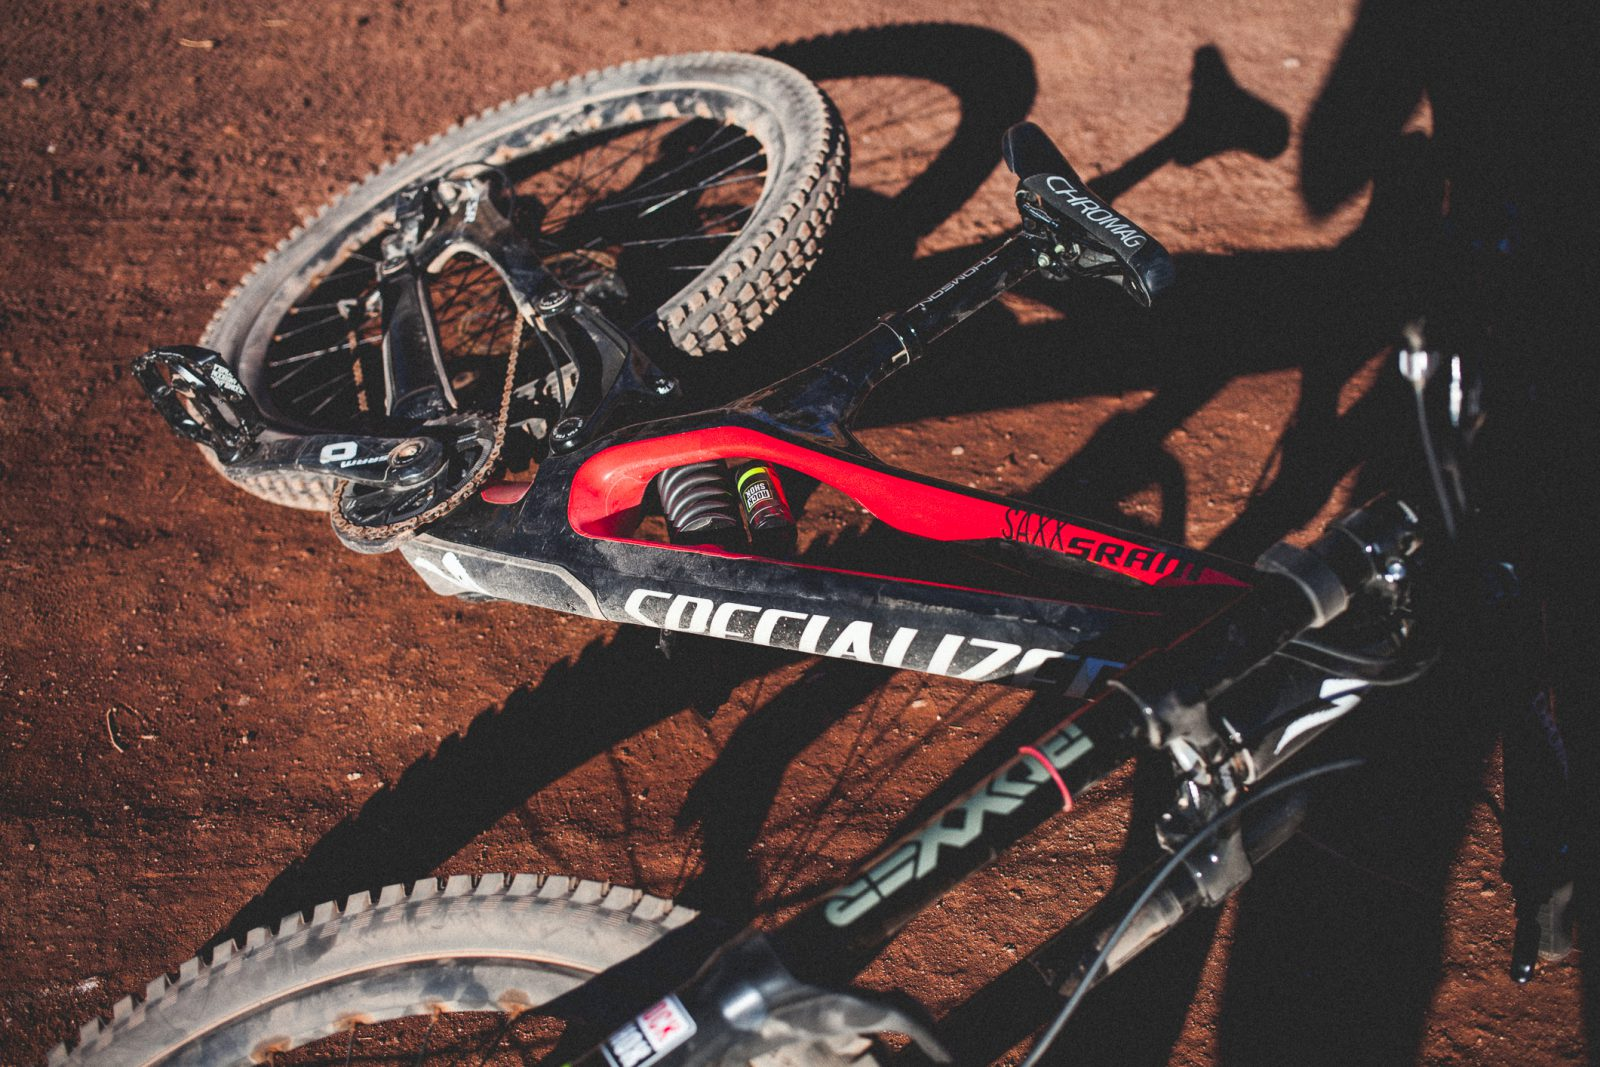 Kyle Norbraten's Specialized Demo 8.